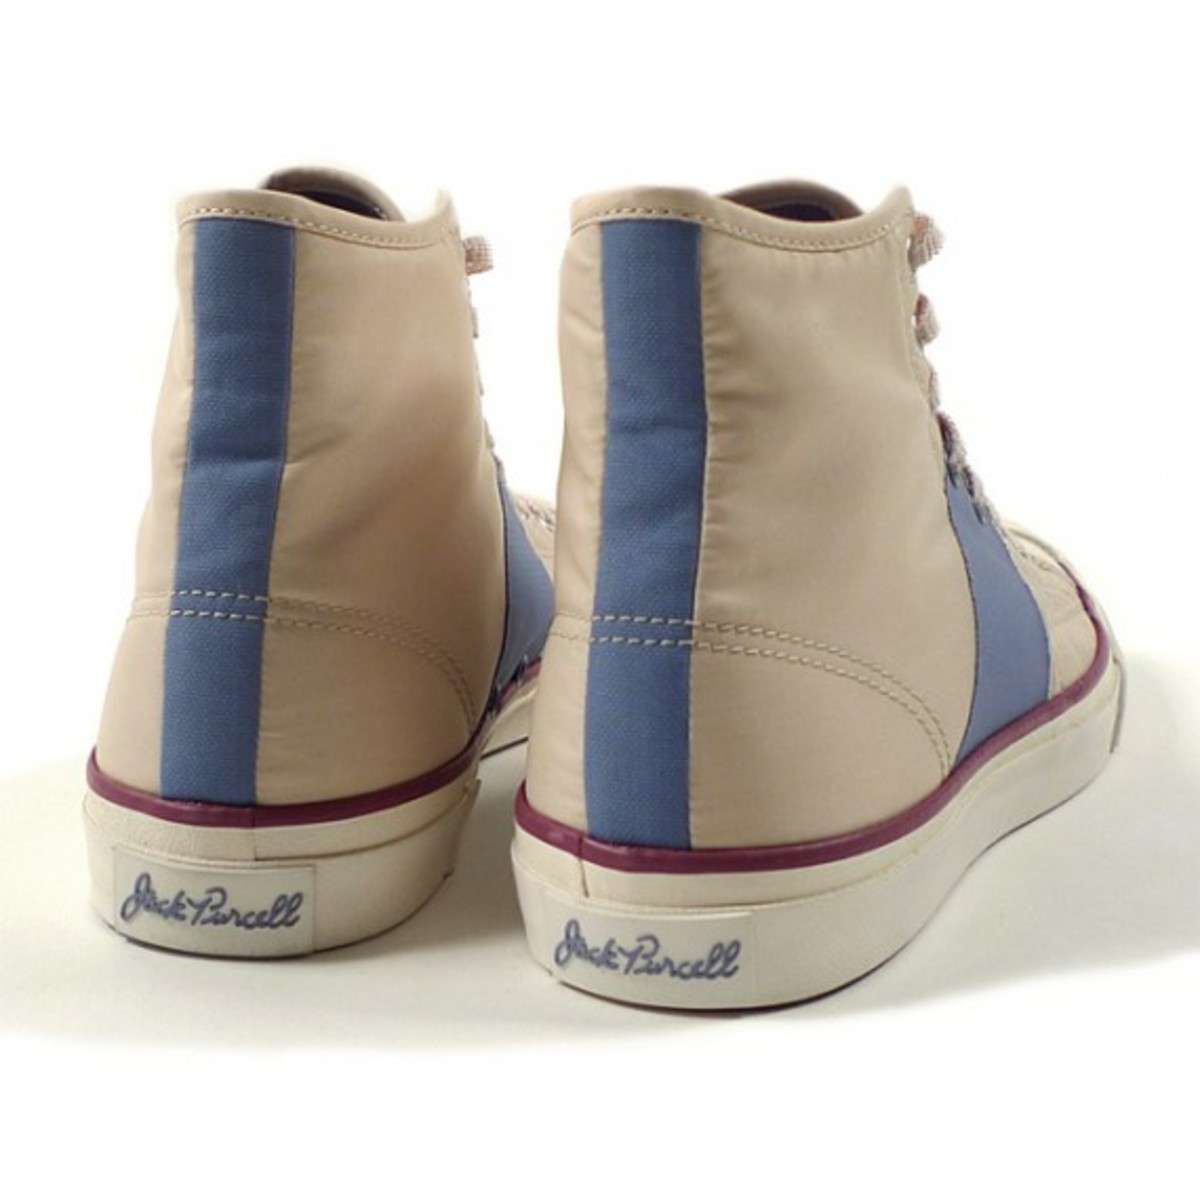 converse-first-string-jack-purcell-johnny-07